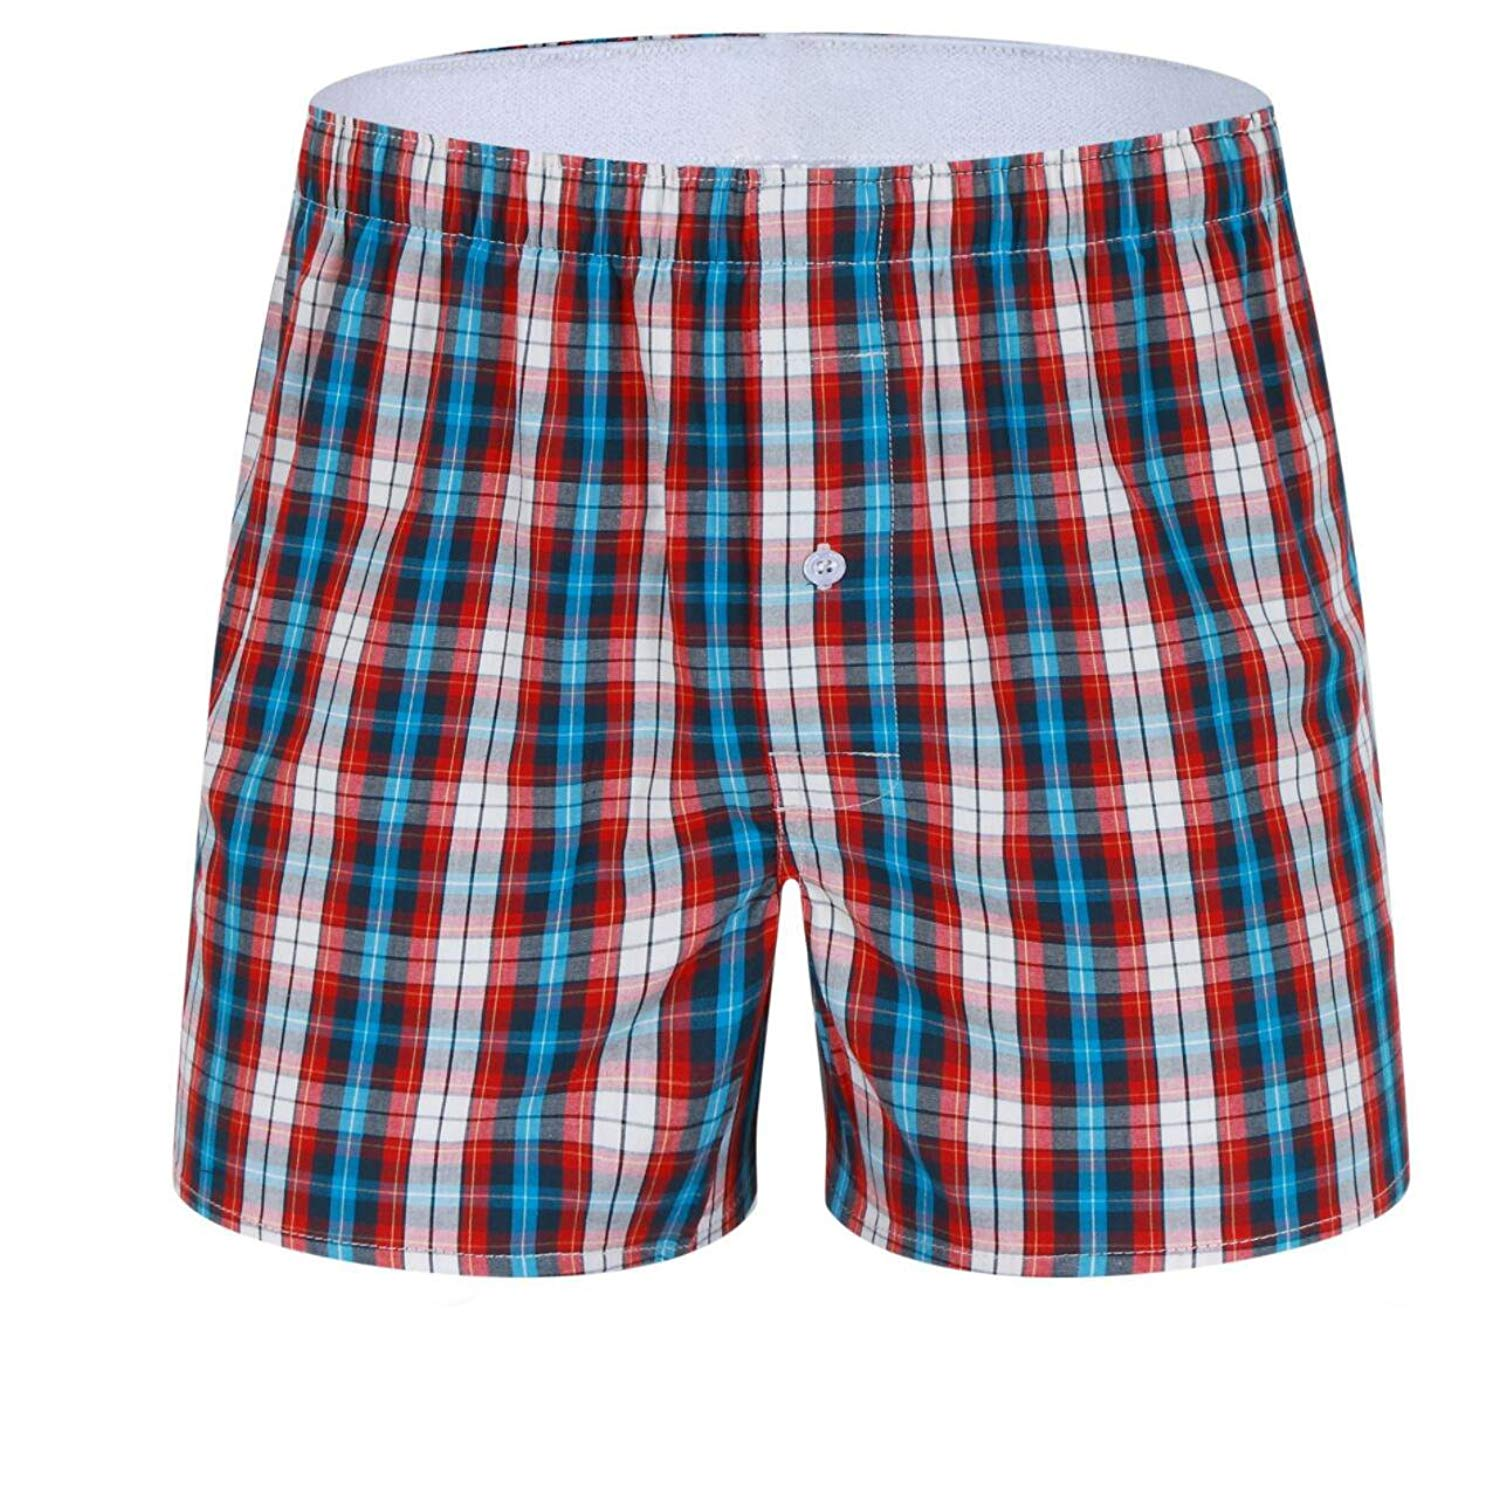 64d3af5279 Clothing, Shoes & Jewelry CheerLin Mens Beachwear Cotton Plaid Board Shorts  Swimwear Trunks Bathing Suits